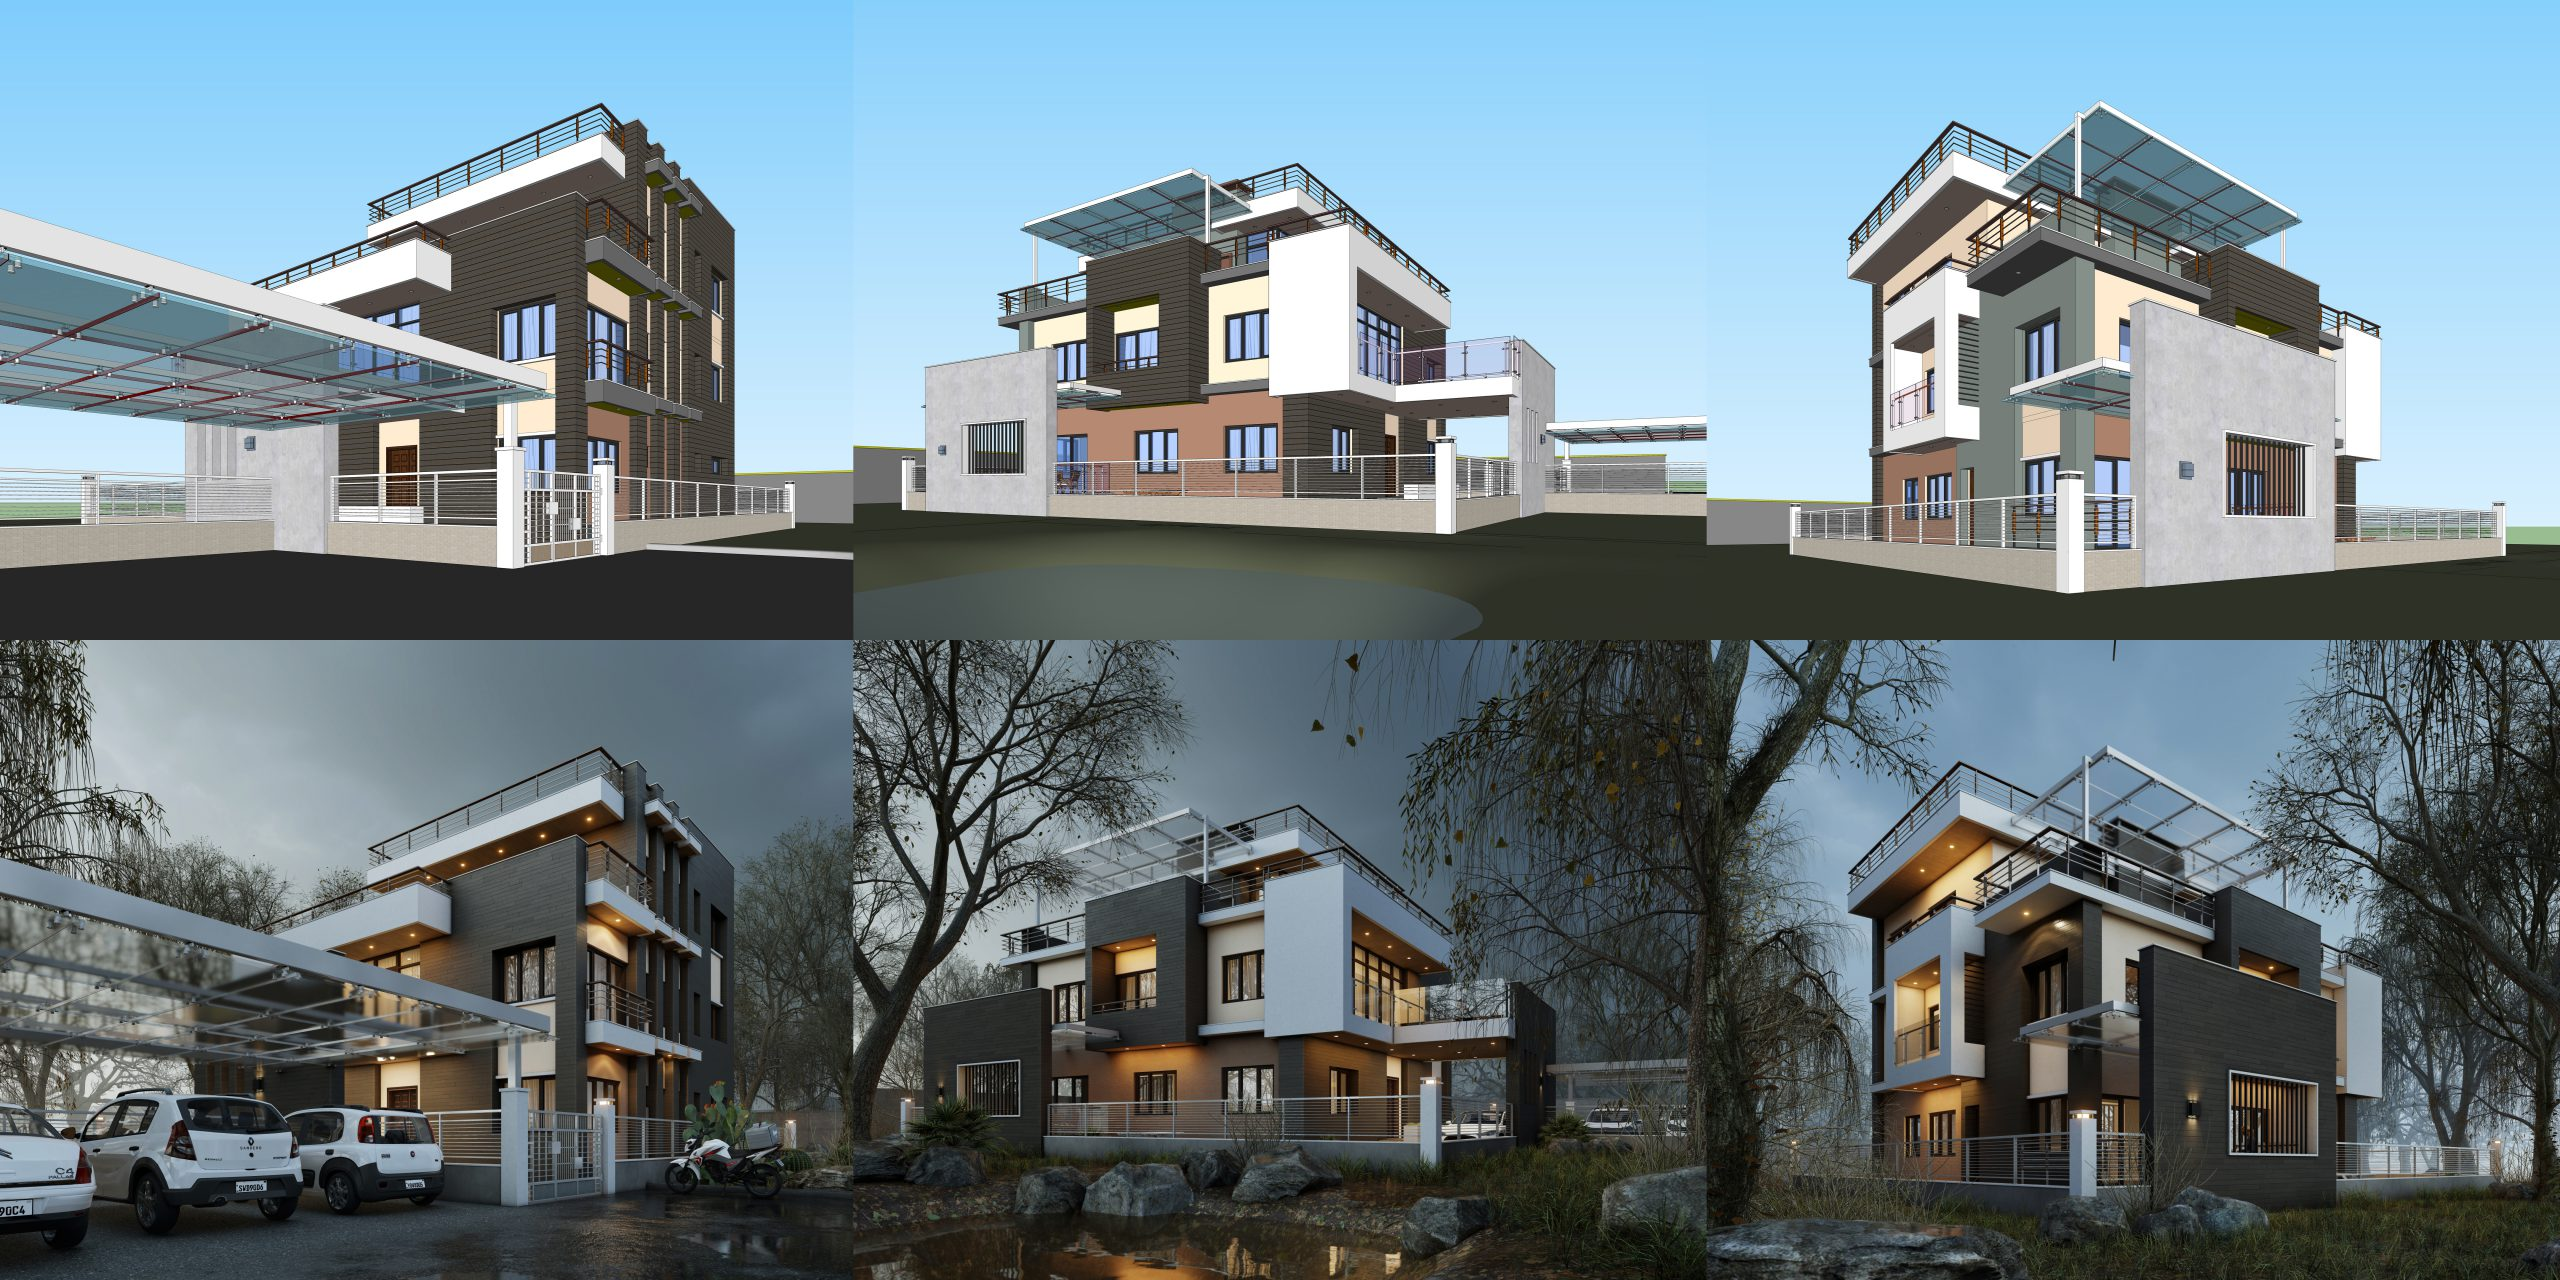 Three dramatic before/after views, rendered in Lumion by Suraj Karki (Instagram: @_yesk).